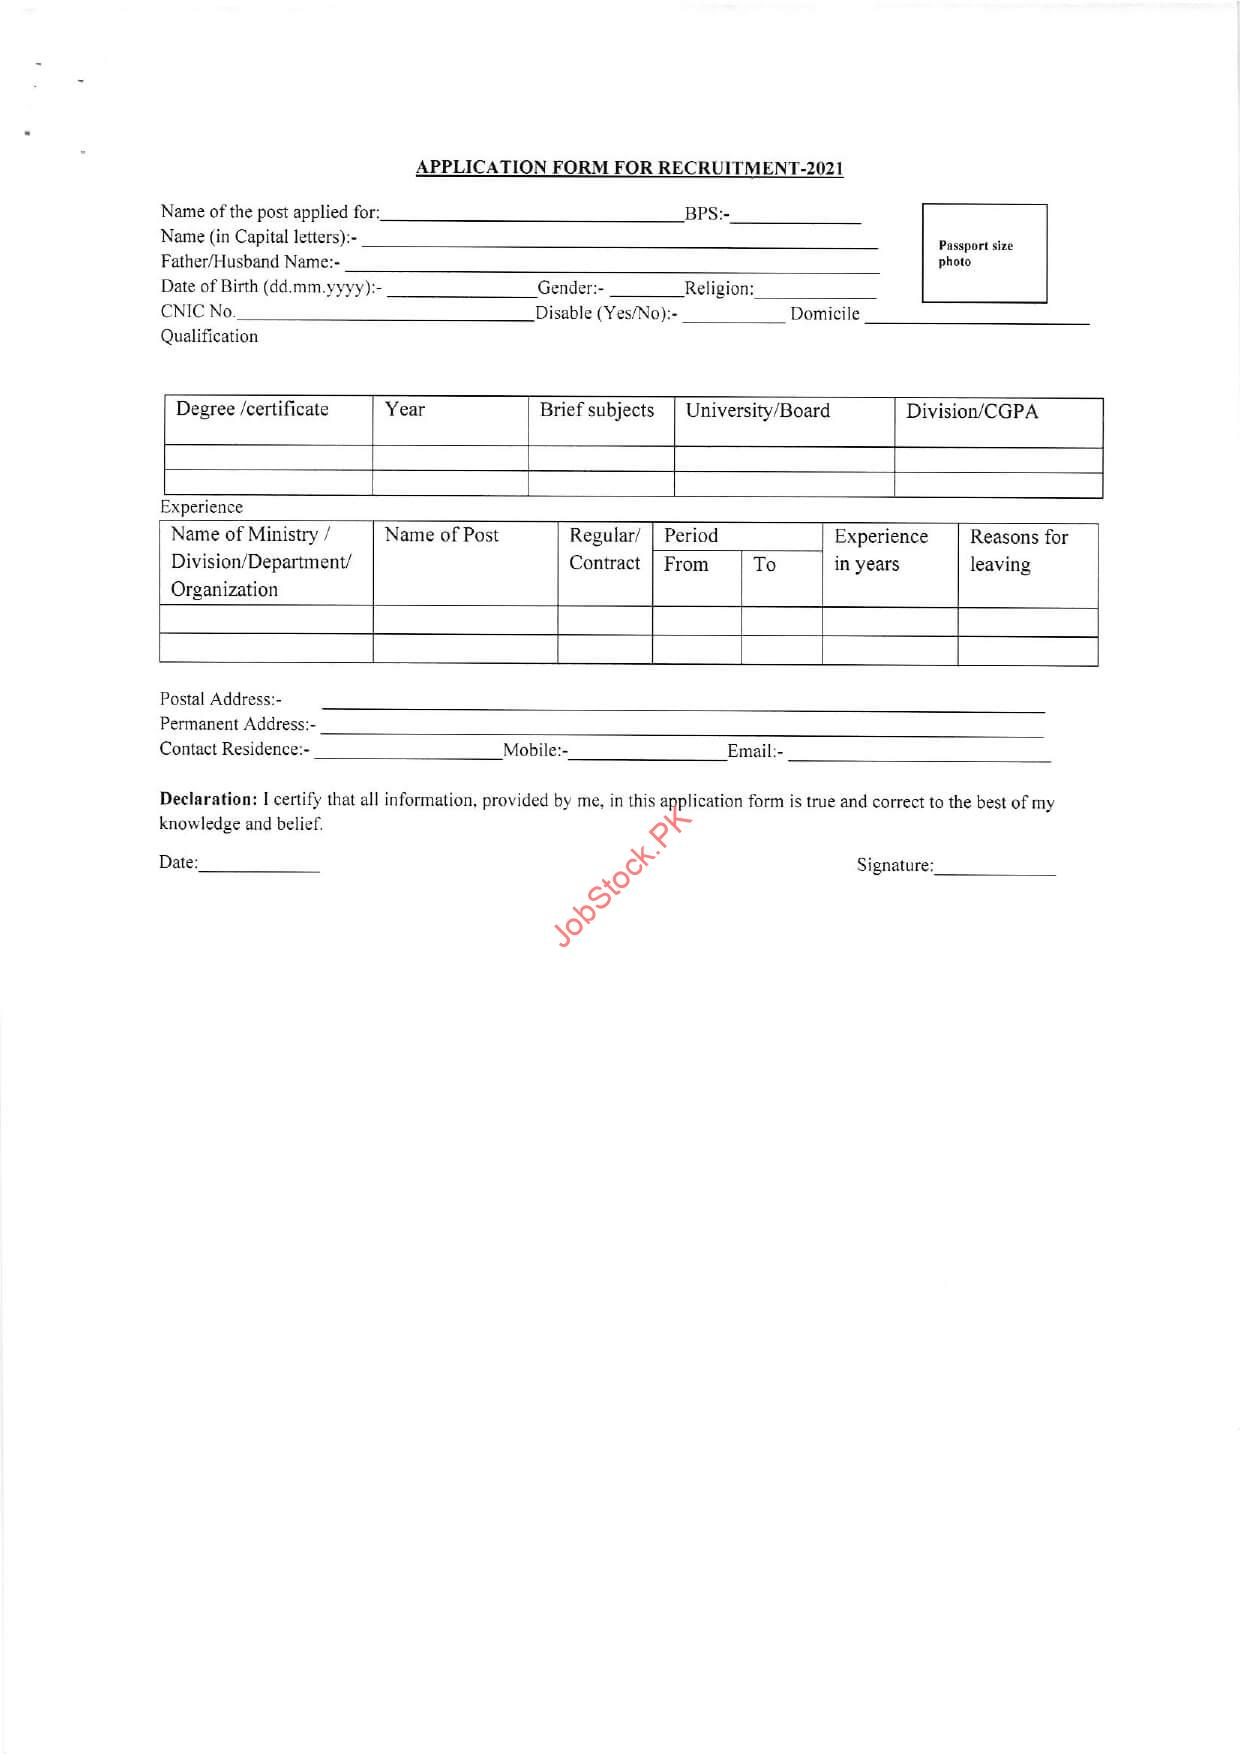 Ministry Of Water Resources Jobs 2021 Application Form